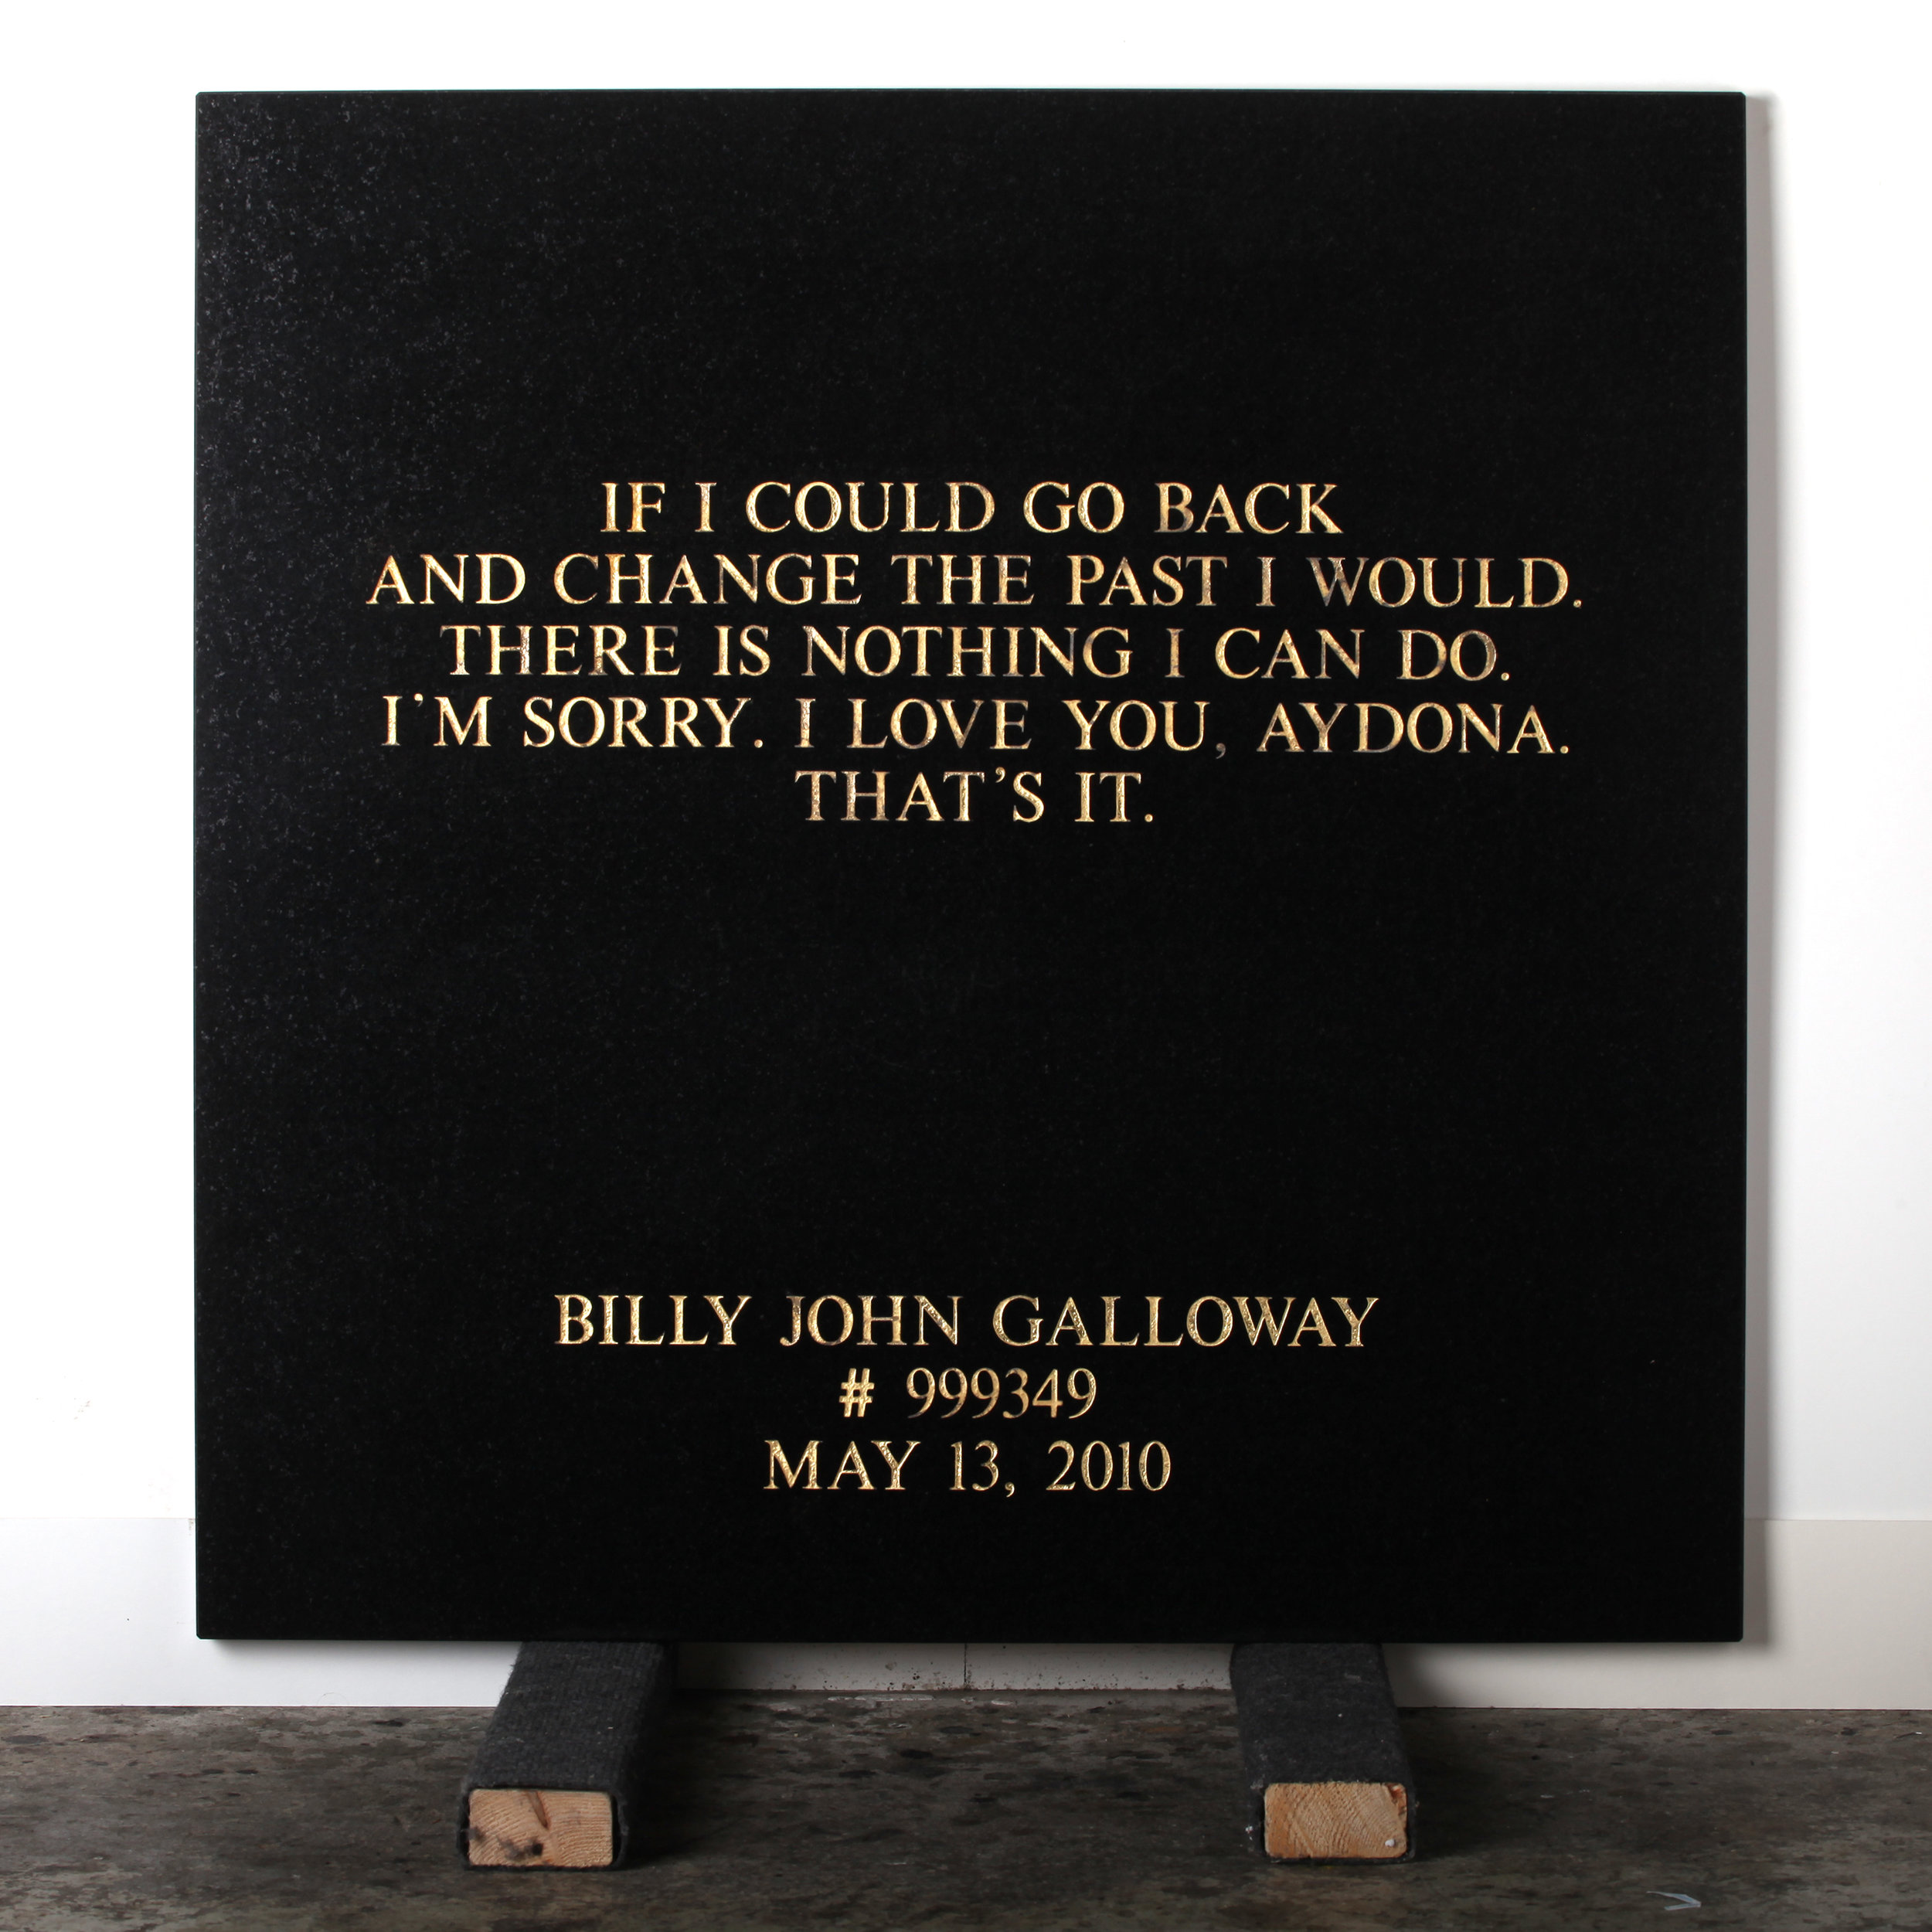 Last Statement    /  Plate IV. # 999349 Billy John Galloway  Marble / Sandblasted Letters / 24 Carat Gold Leaf 80 x 80 x 3 cm / 31 x 31 x 1,5 in Collection of Per Fronth